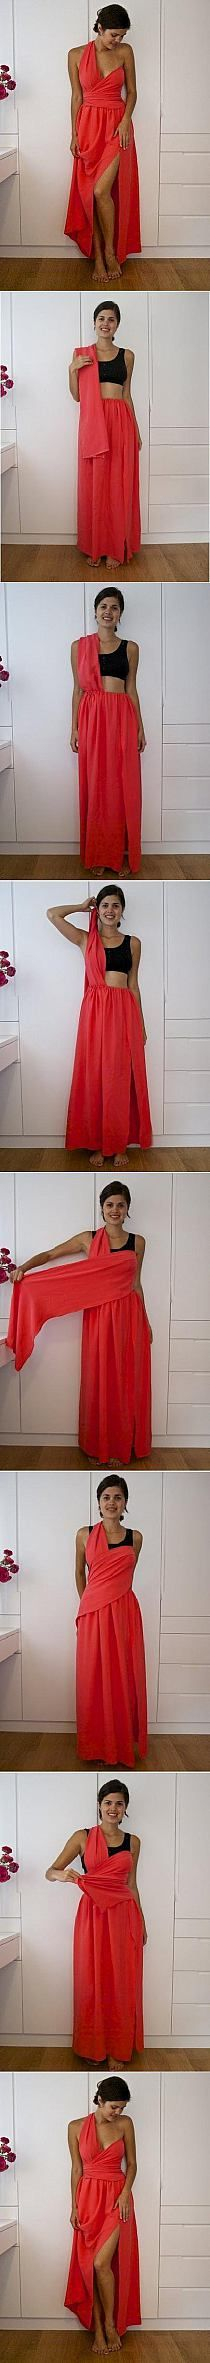 DIY No Sew Dress DIY Projects | UsefulDIY.com